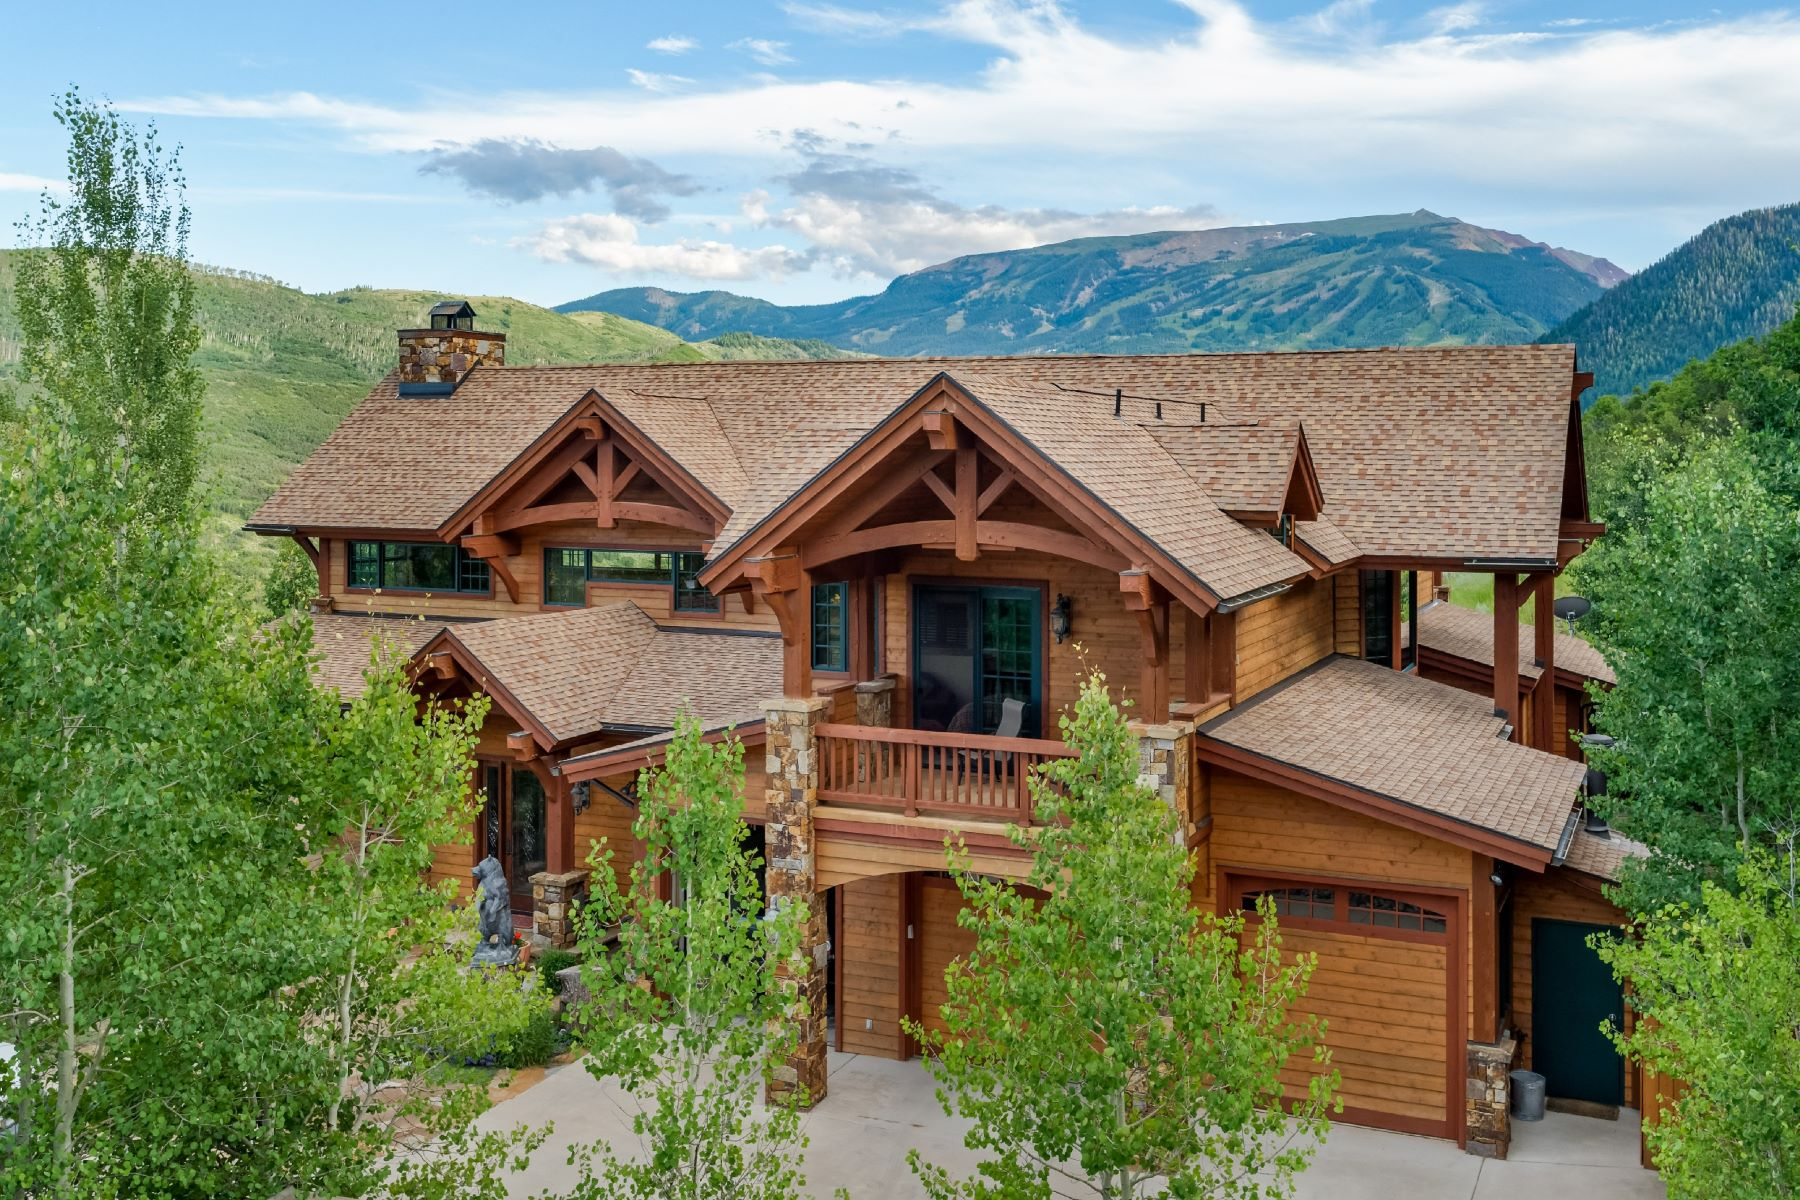 Single Family Home for Sale at Shield O Terrace 151 Blue Sage Lane Snowmass, Colorado, 81654 United States